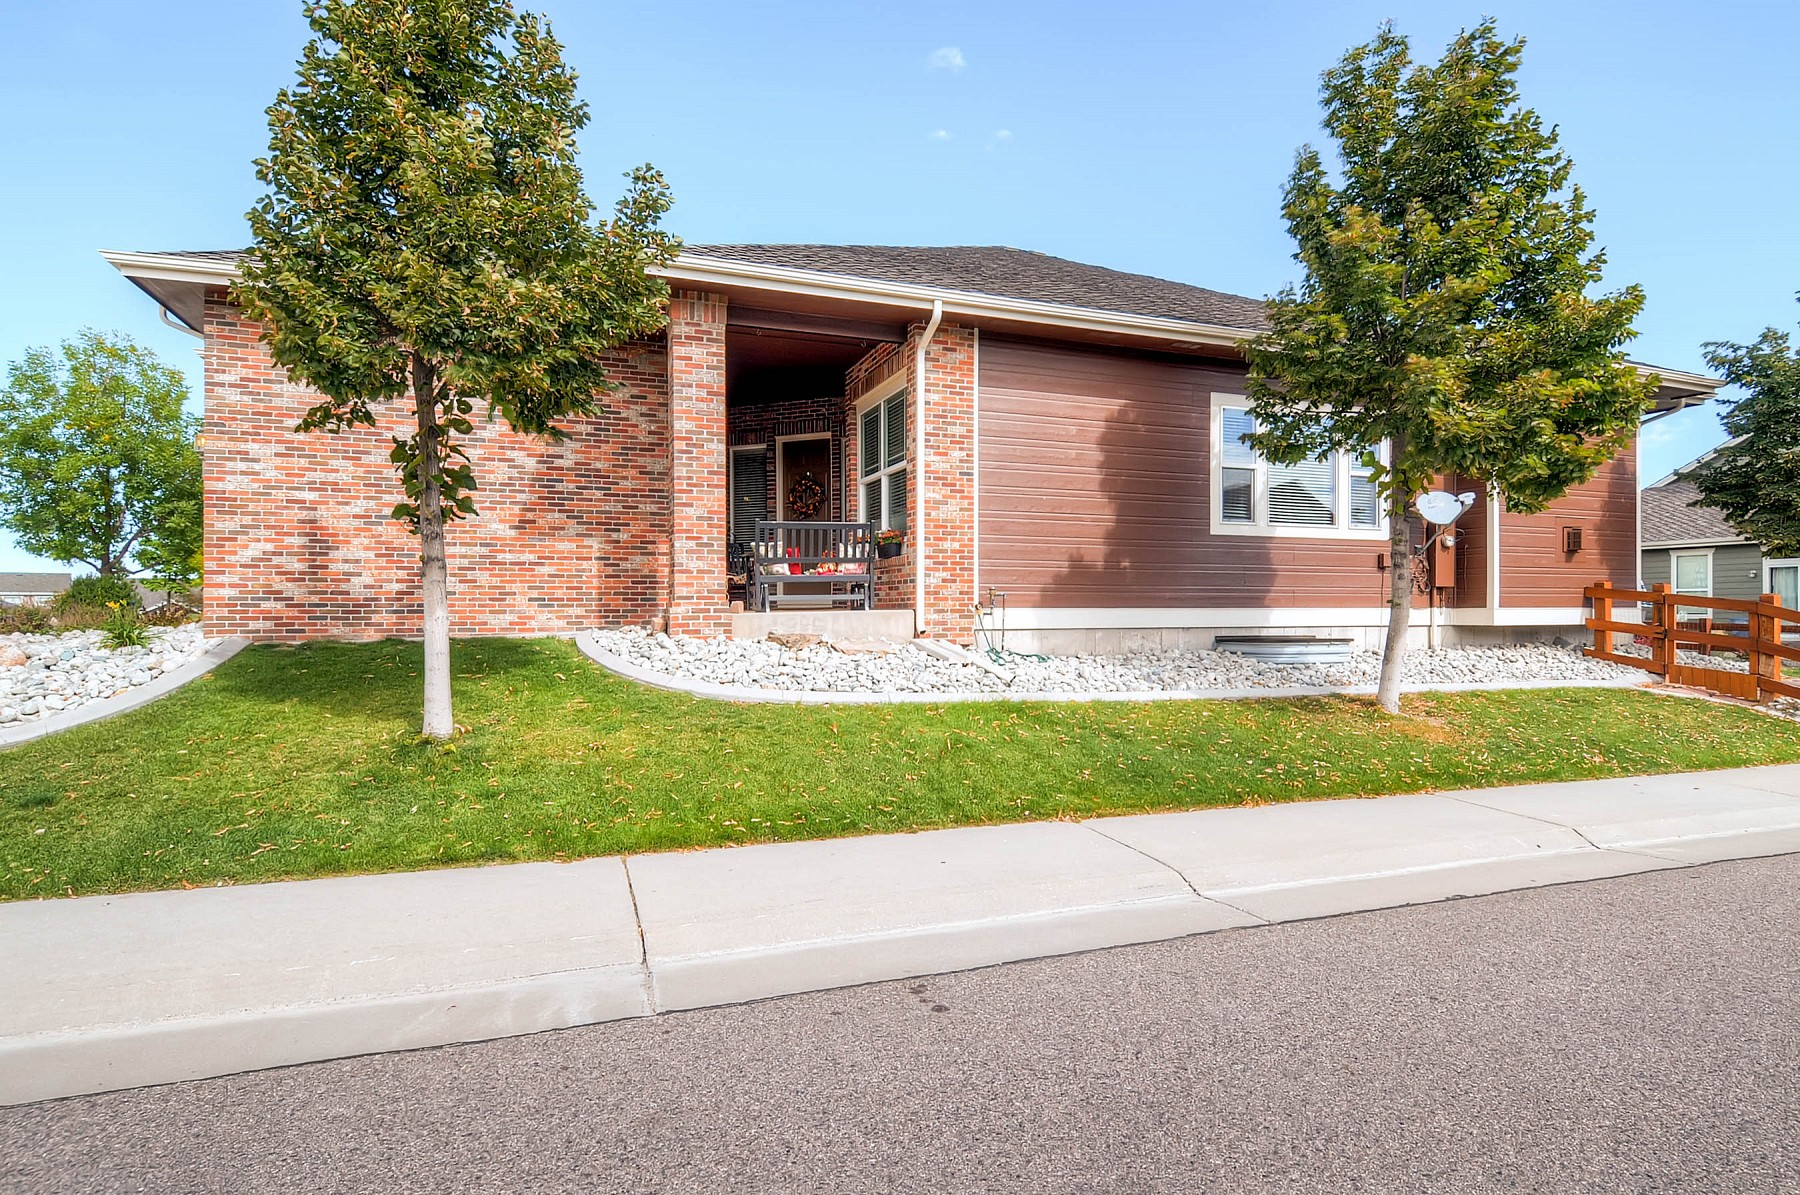 6678 South Benton Way, Littleton, CO 80123